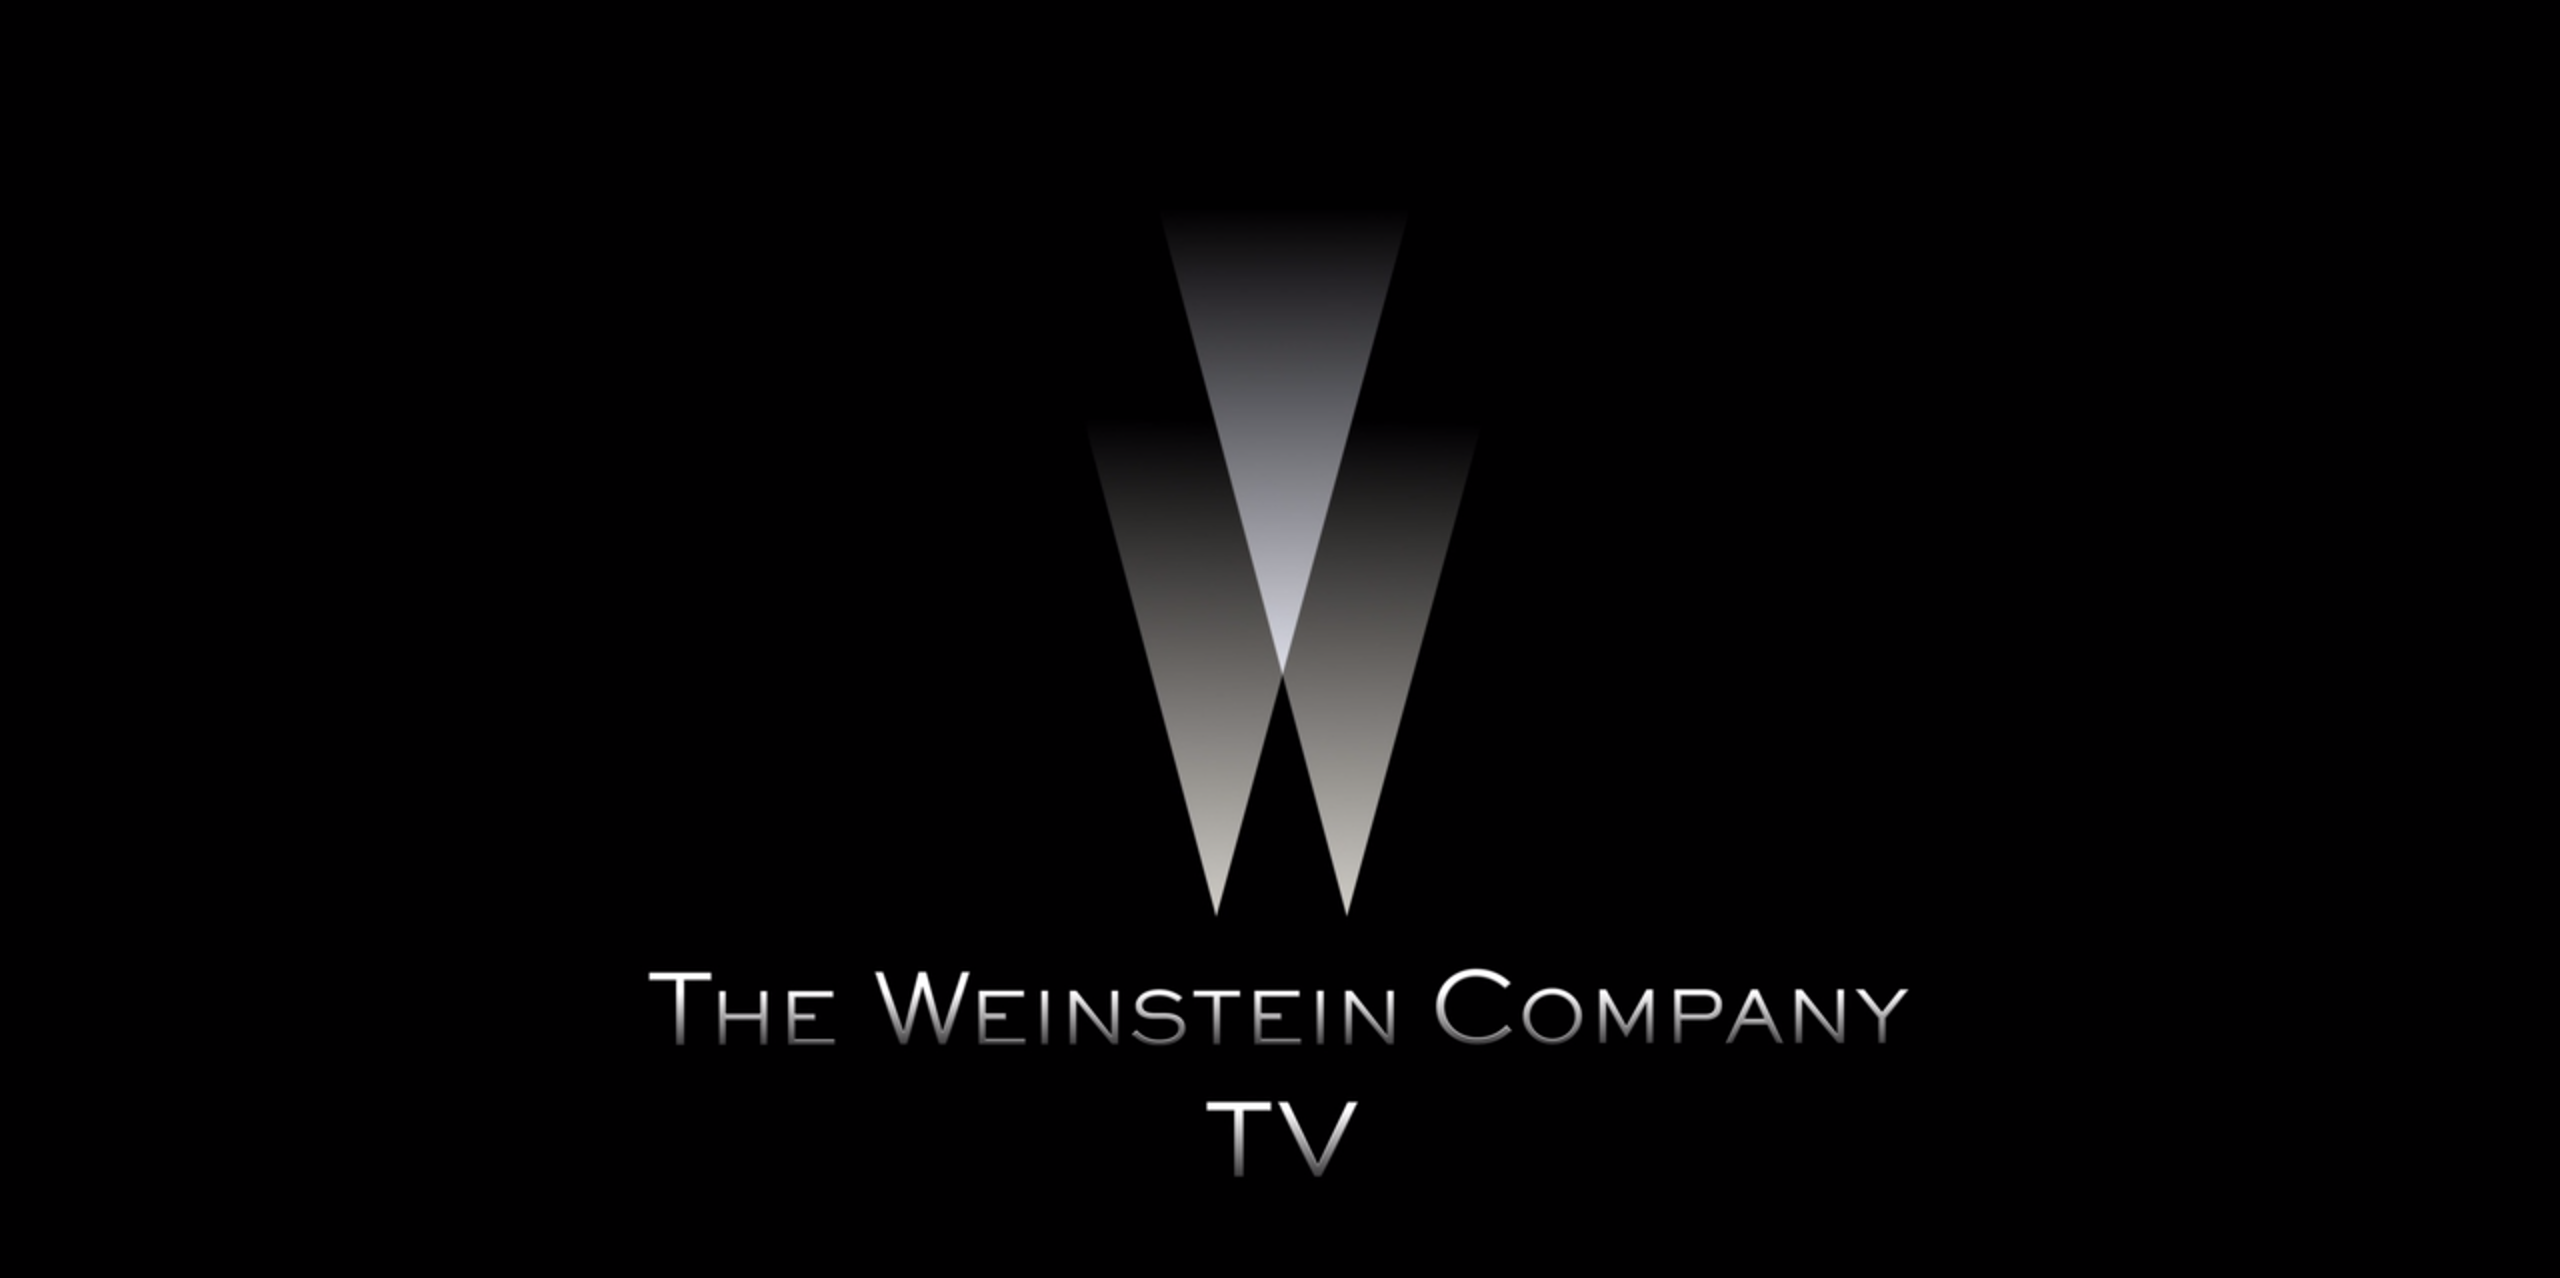 The Weinstein Company Television (2014)